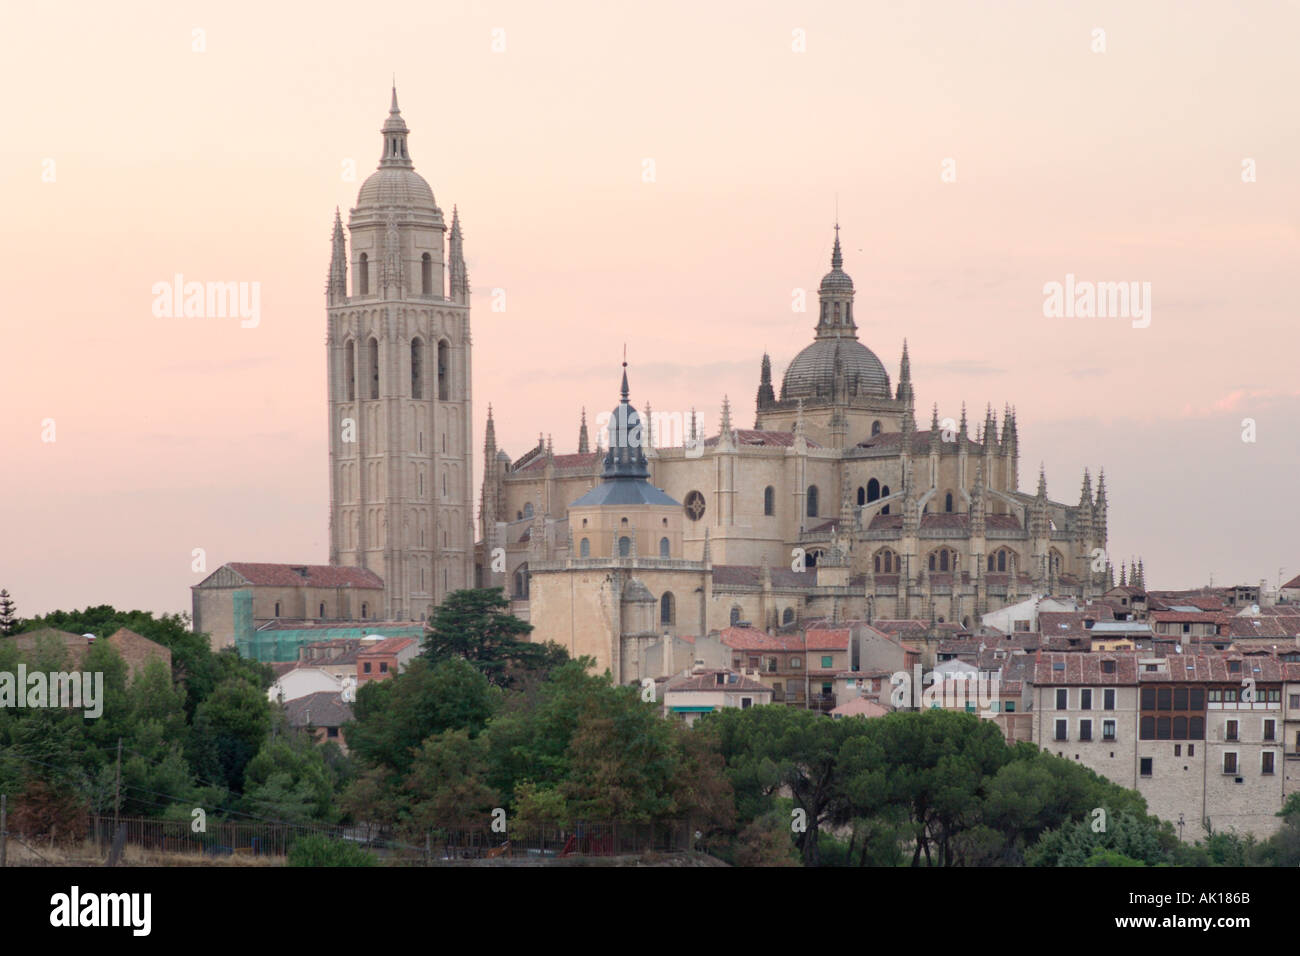 Cathedral at sunset, Segovia, Spain - Stock Image